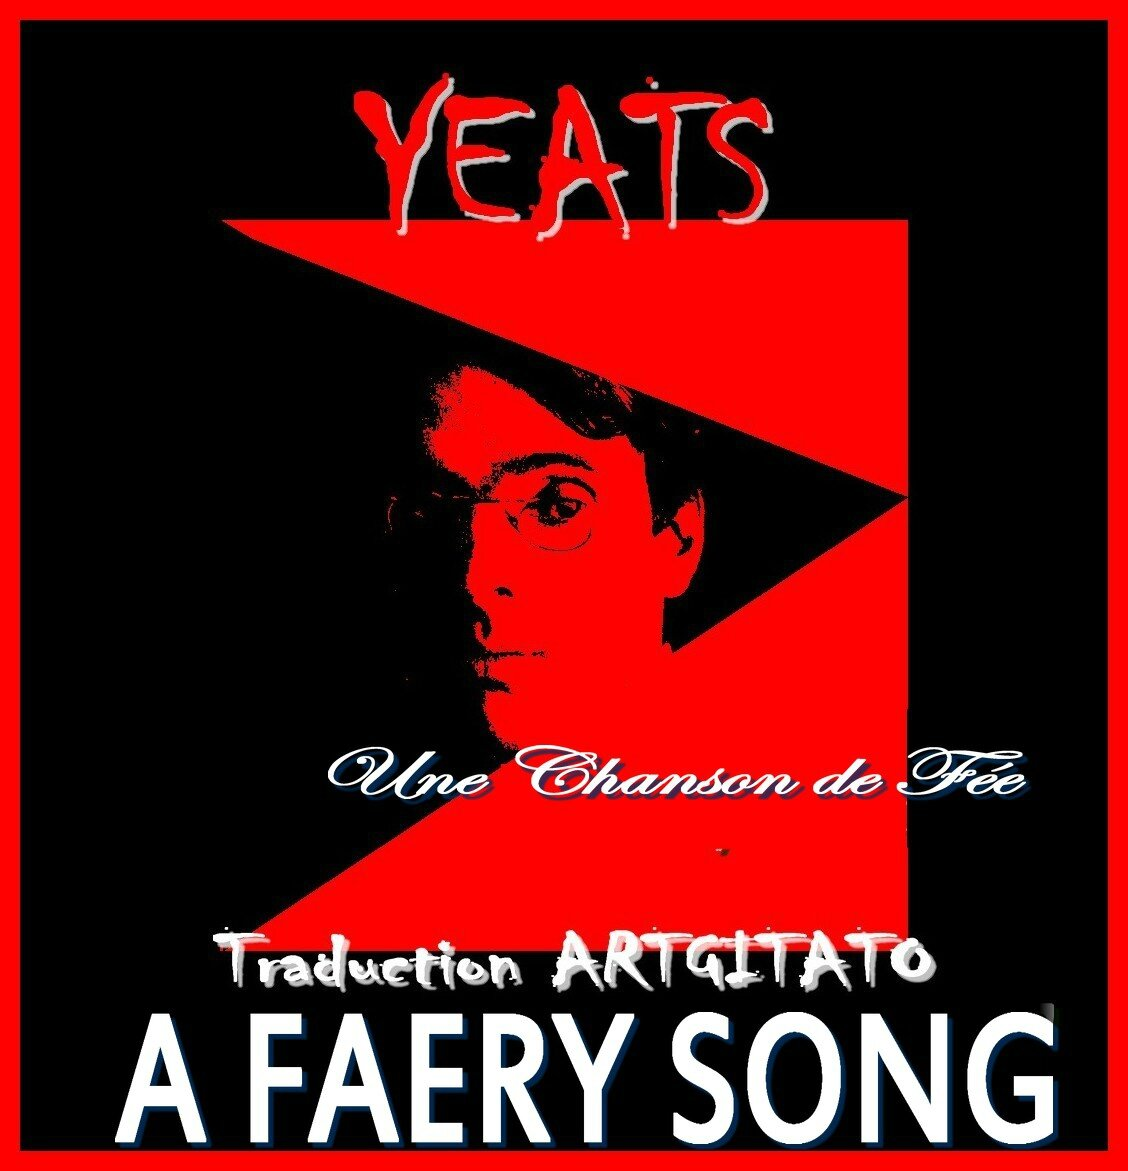 A Faery Song Yeats Traduction Artgitato & Texte anglais